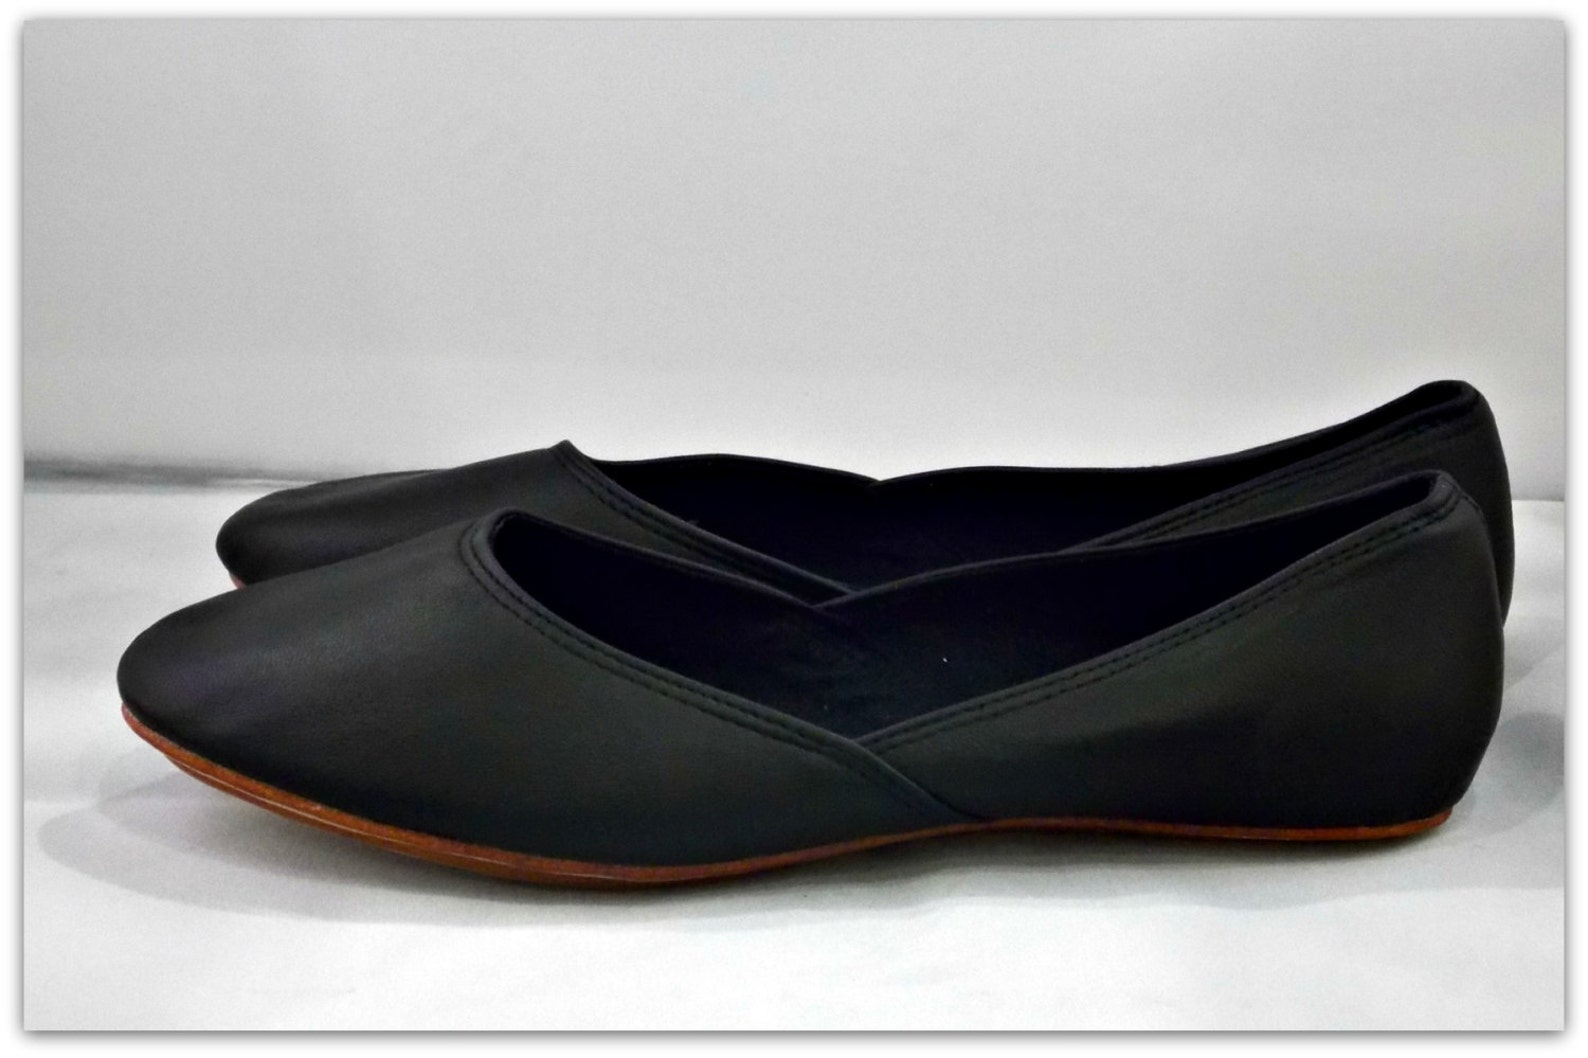 maya. black leather ballet flats/ women's shoes/ bridal flats. available in different colours & sizes